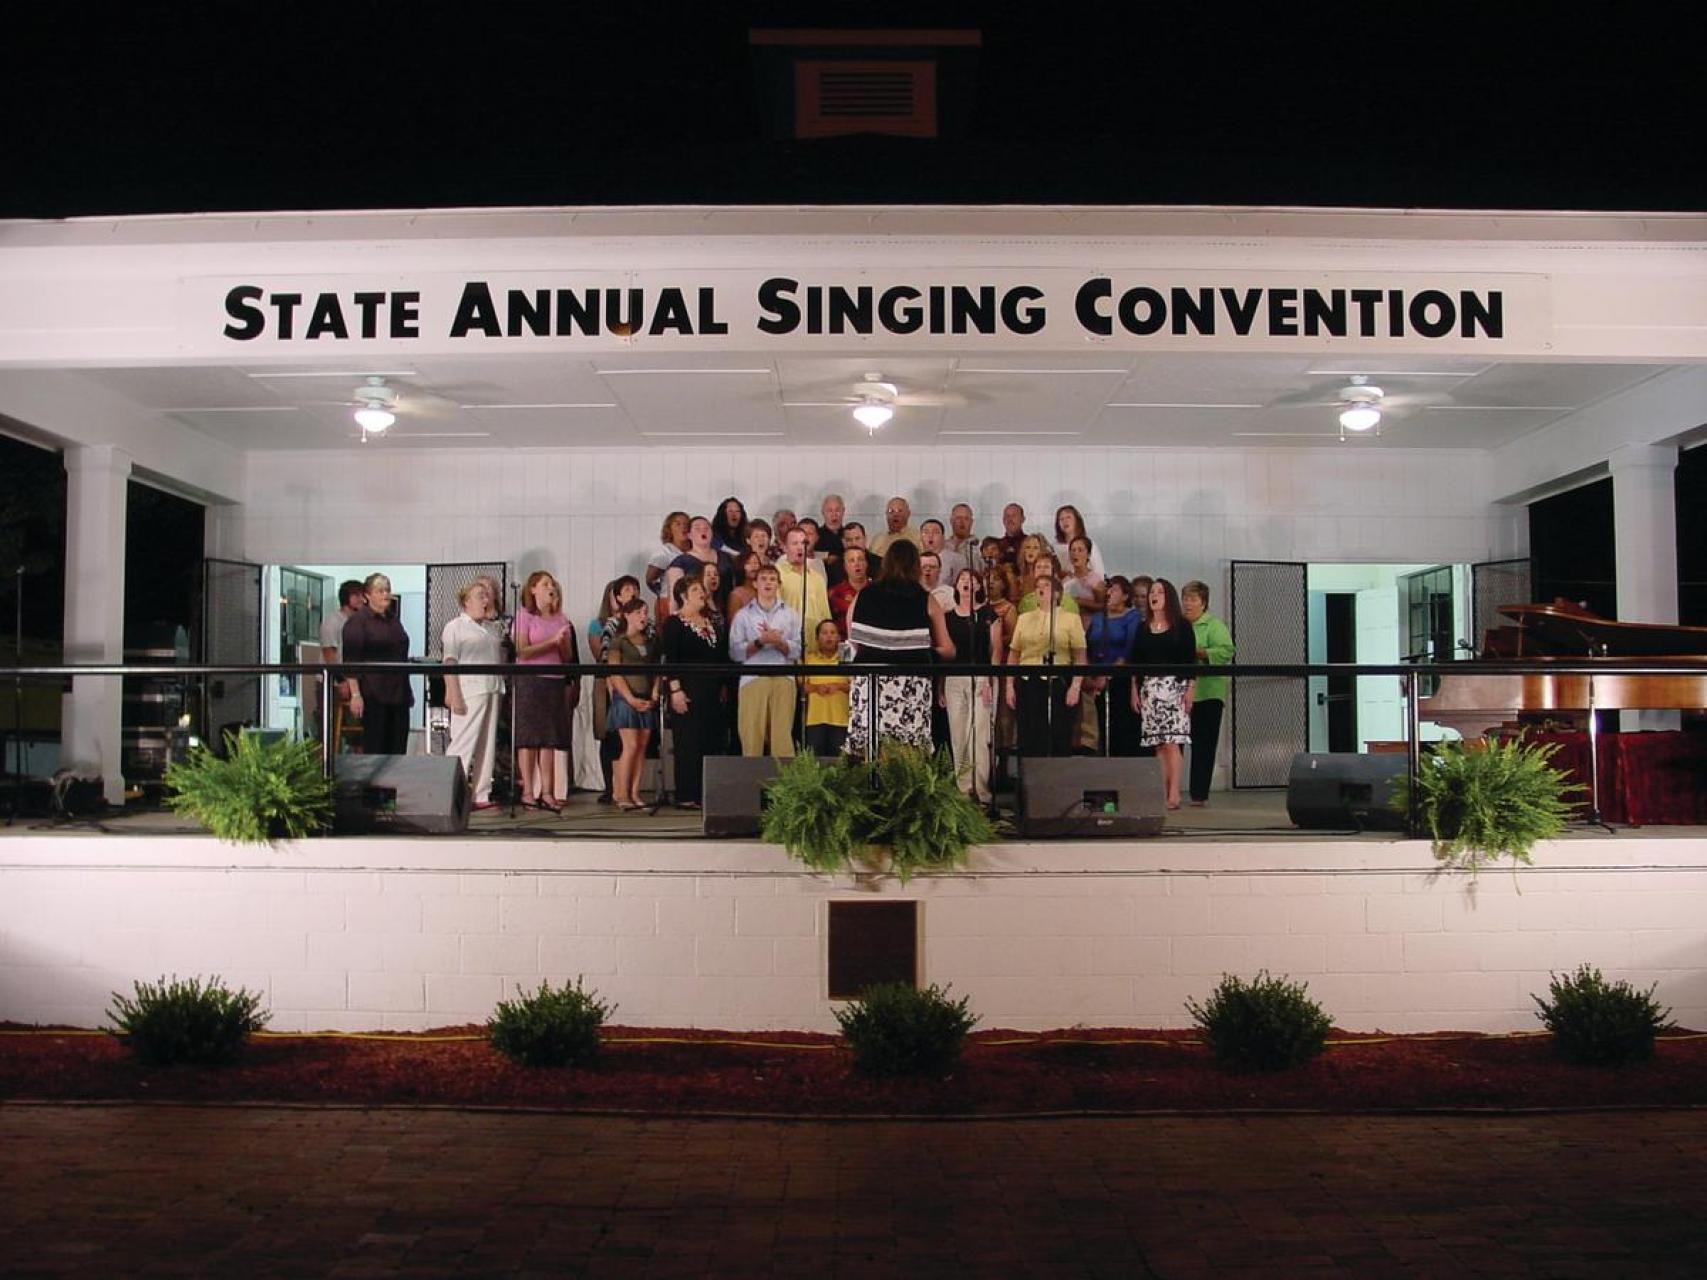 A group performing at the Annual State Singing Convention